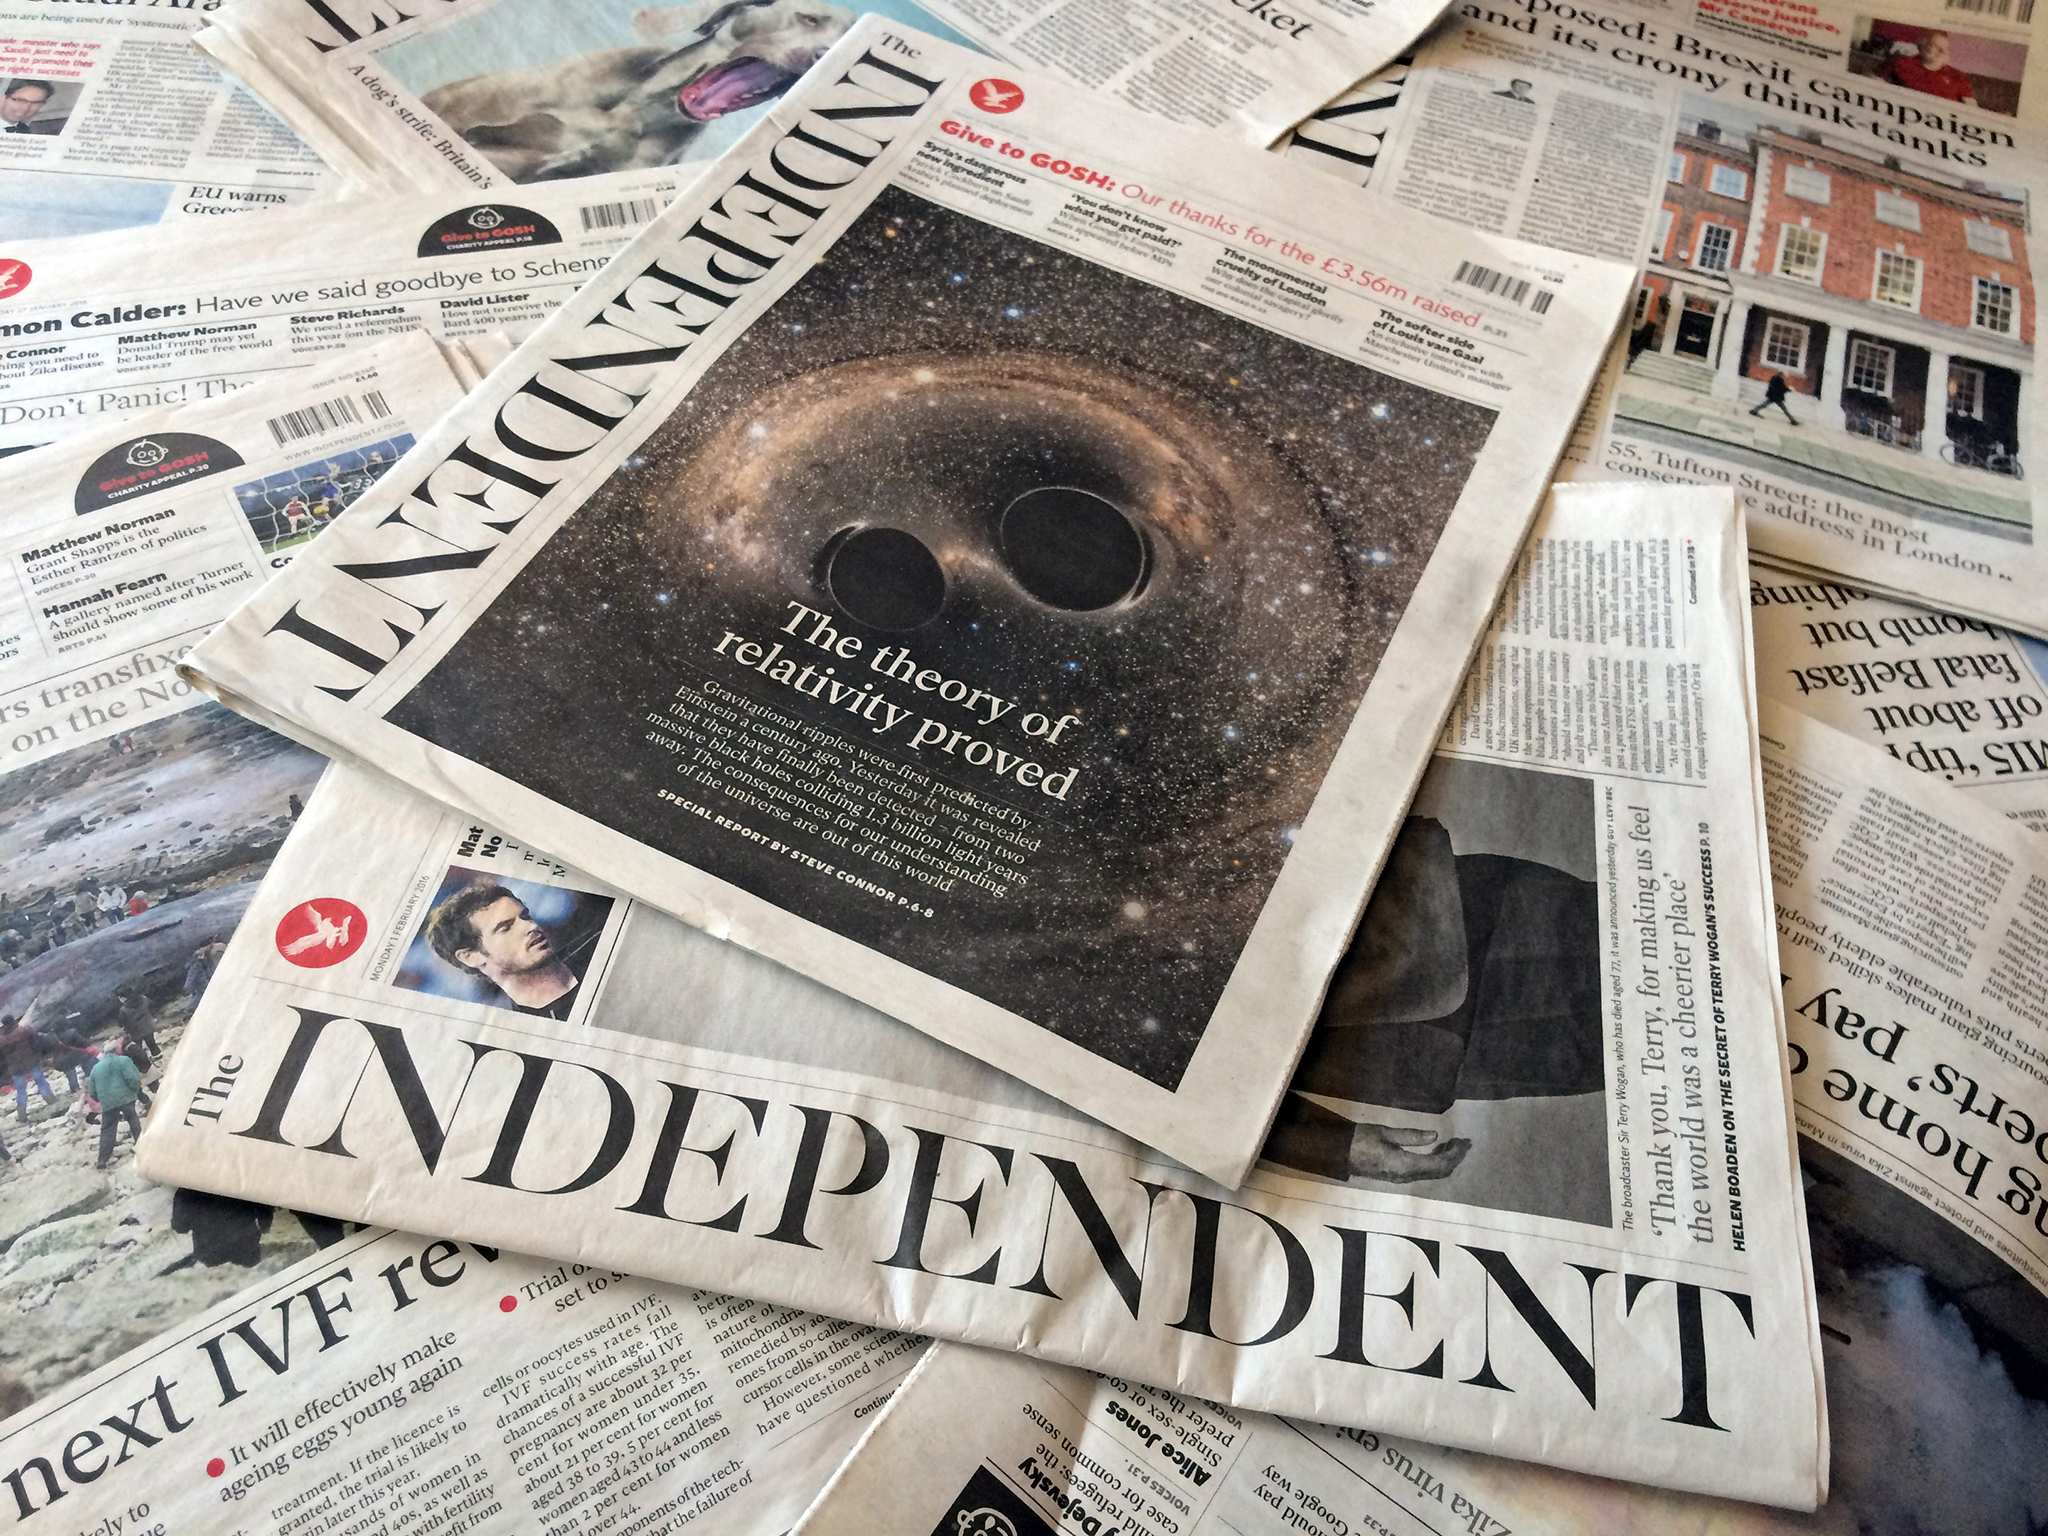 epa05156425 Editions of the British newspaper Independent are presented on a table in London, Britain, 12 February 2016. Britain's The Independent and The Independent on Sunday newspapers will close their print editions in March, owners ESI Media said on 12 February 2016. Both will have online-only editions. The Independent, which was launched in 1986, will become 'the first national newspaper title to move to a digital-only future,' ESI said. The Independent on Sunday will go online on March 20, and The Independent on March 26, the Press Association reported. EPA/TERESA DAPP